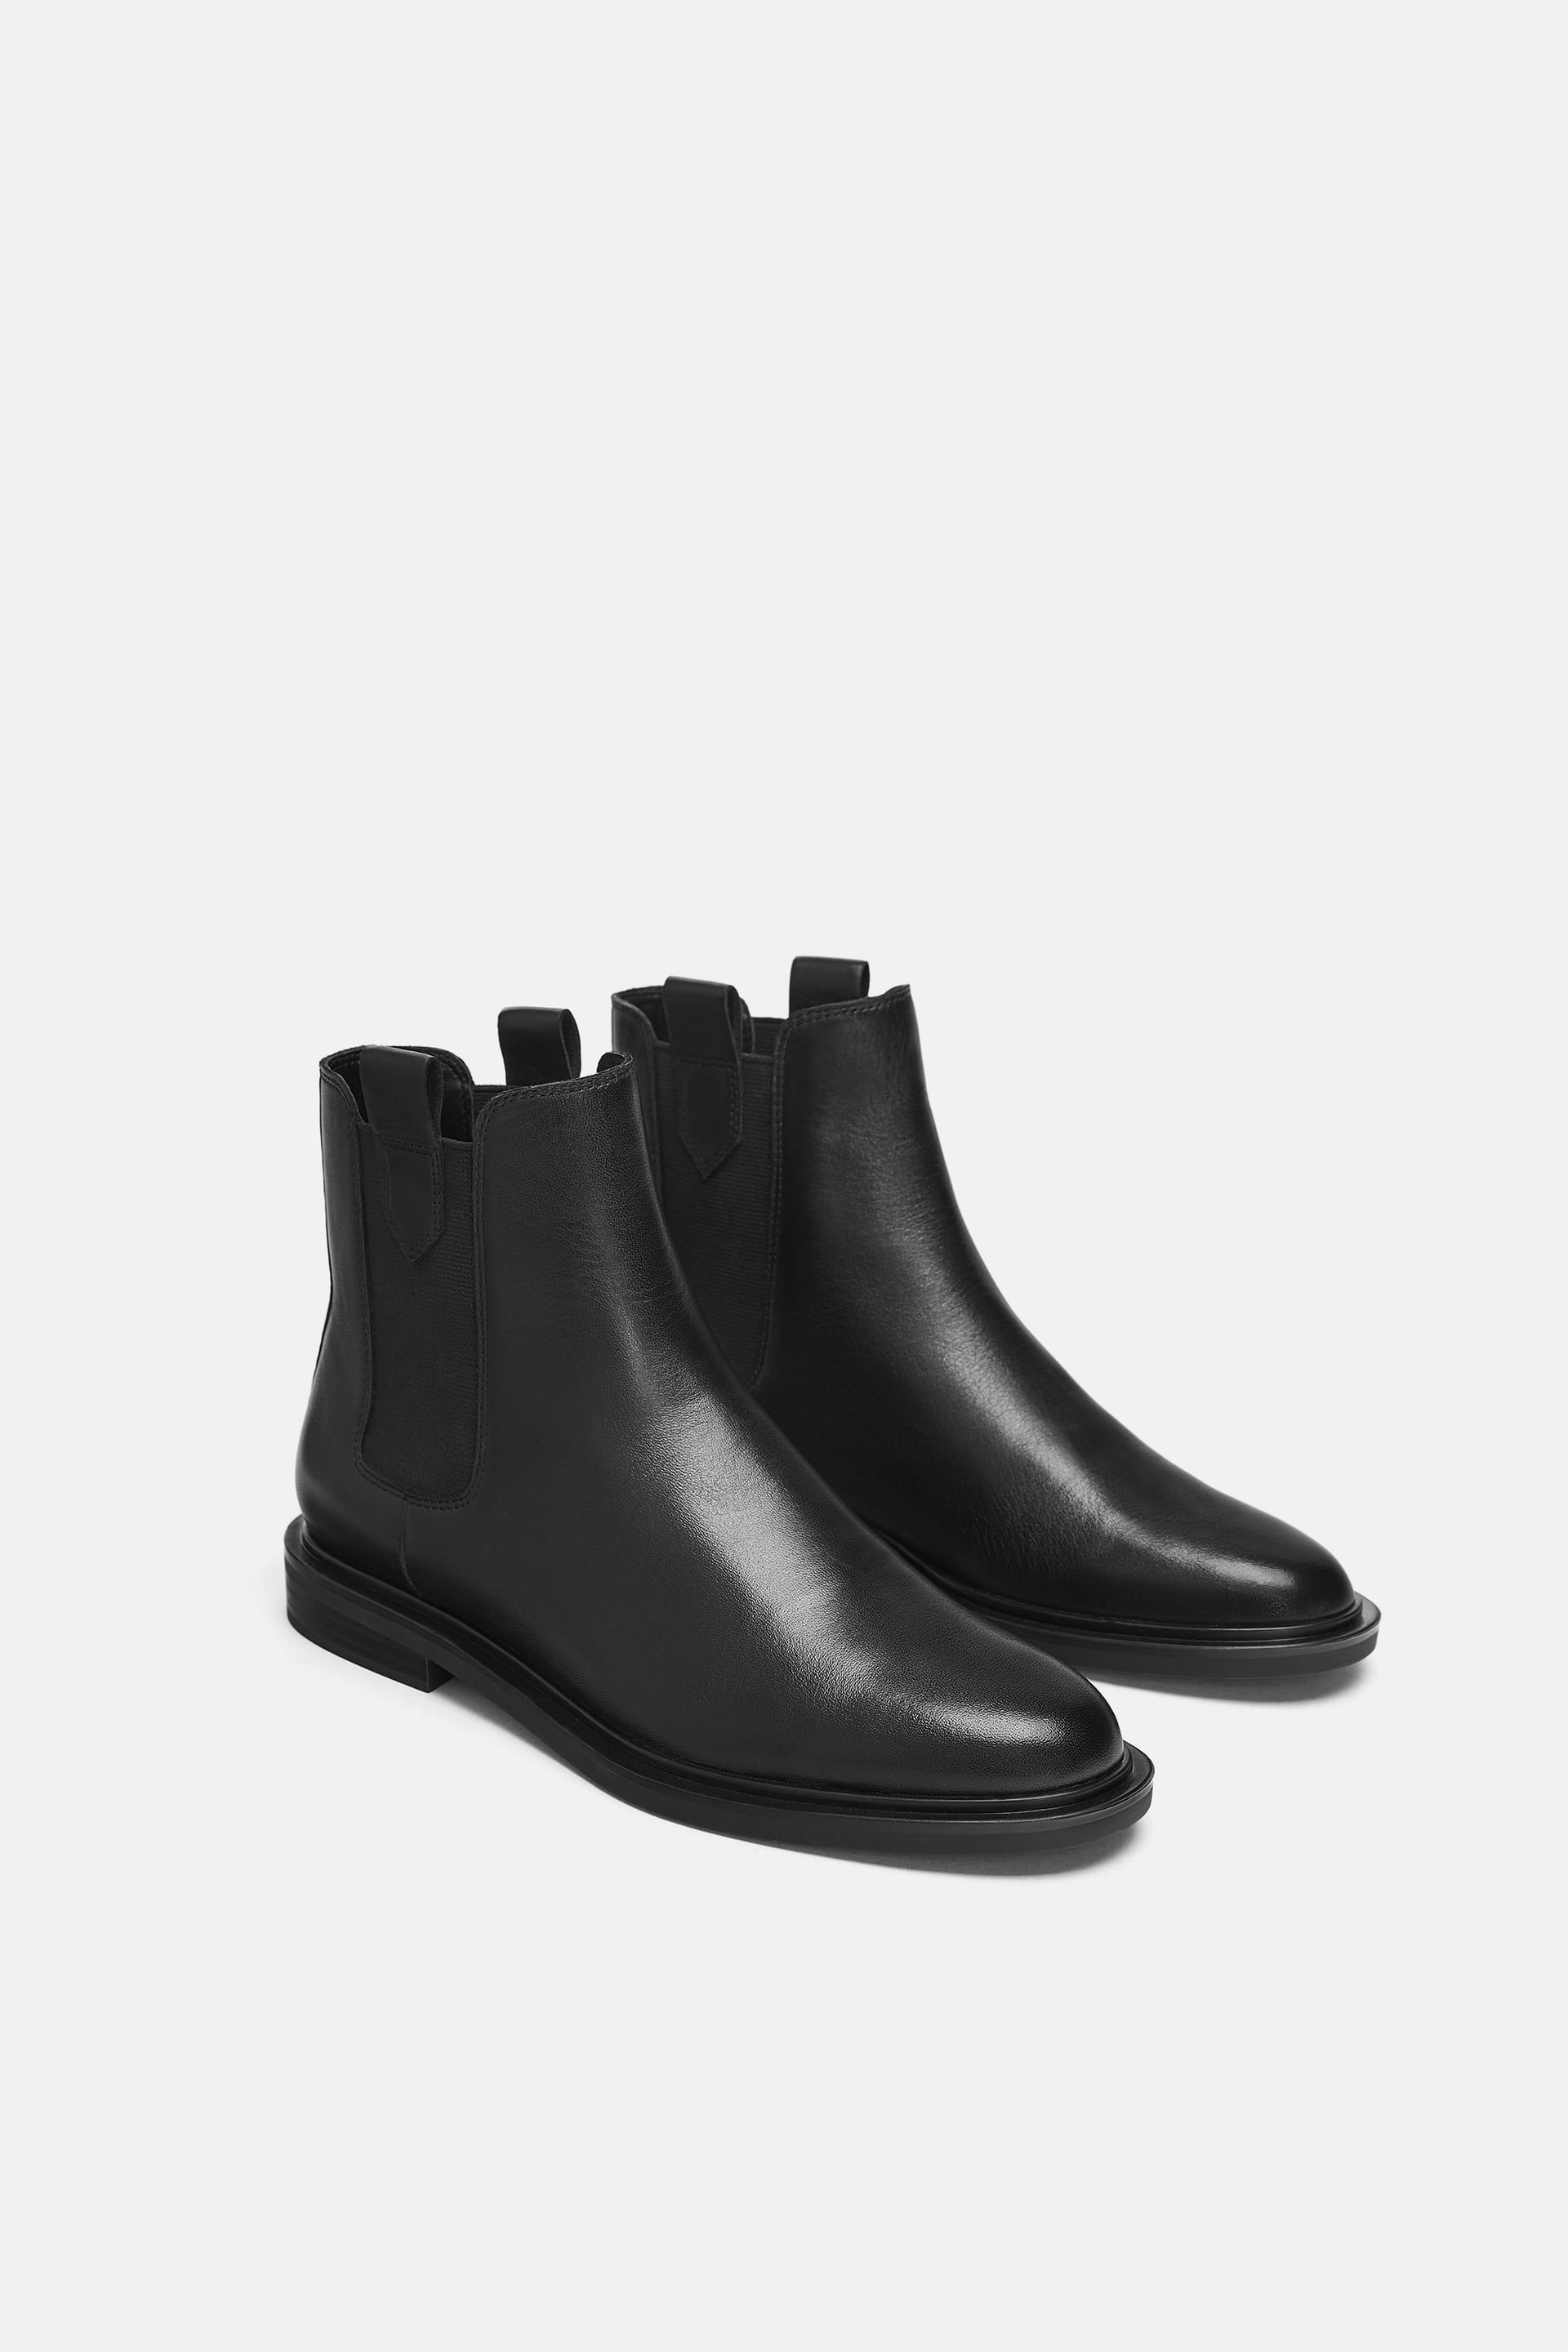 LOW HEEL LEATHER ANKLE BOOTS WITH PULL